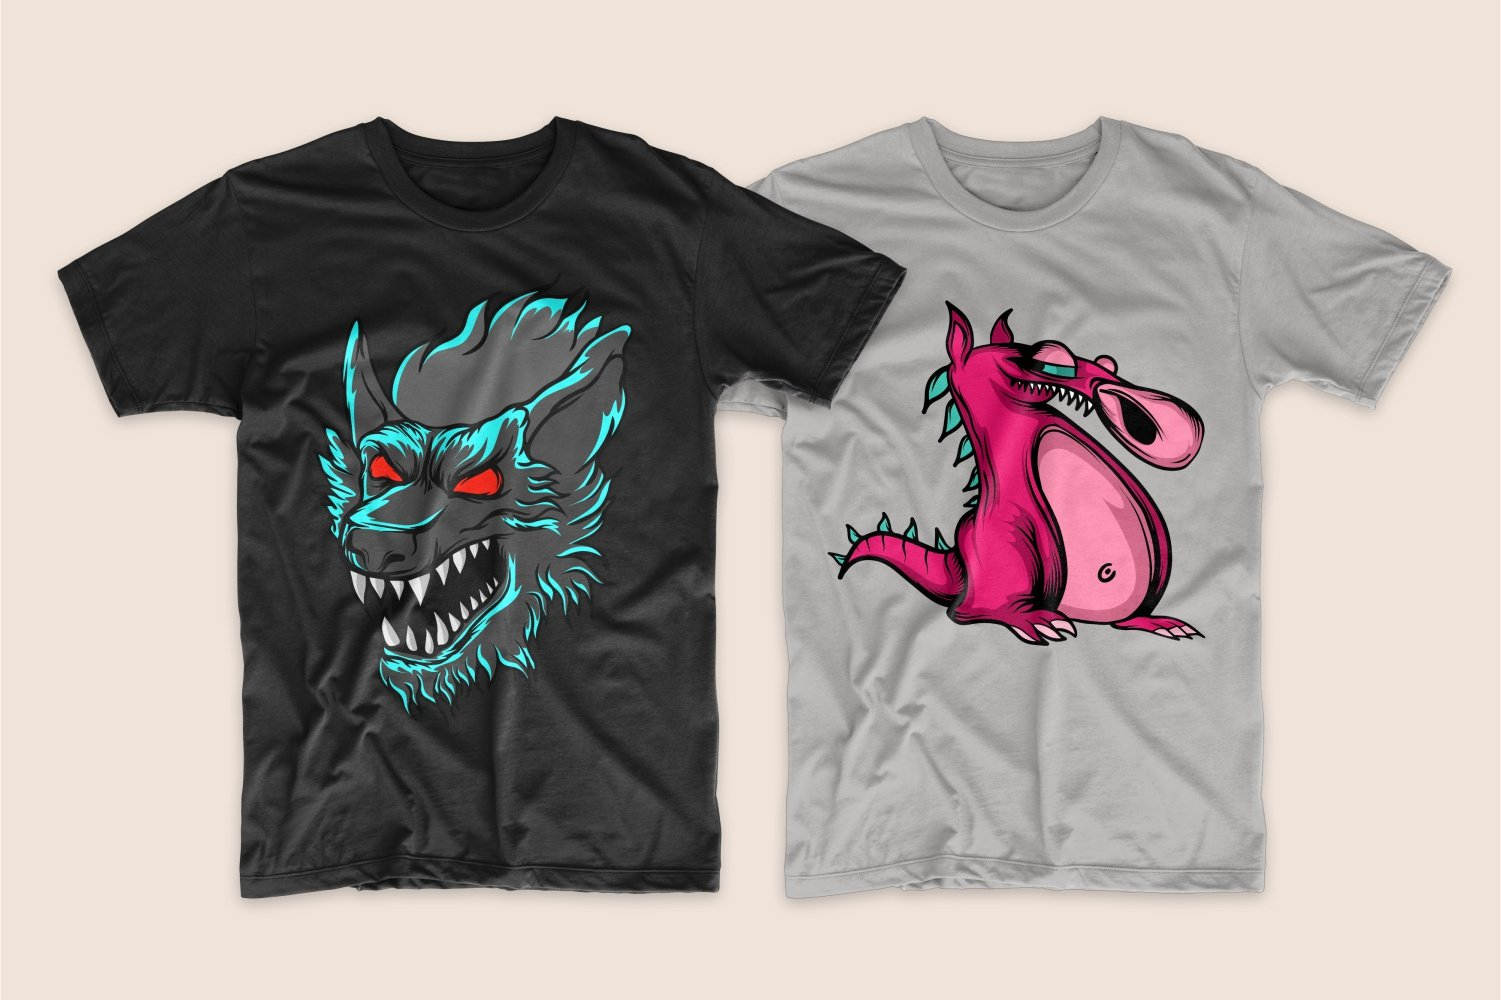 Black T-shirt with the image of a werewolf and gray with a pink flirty dragon.